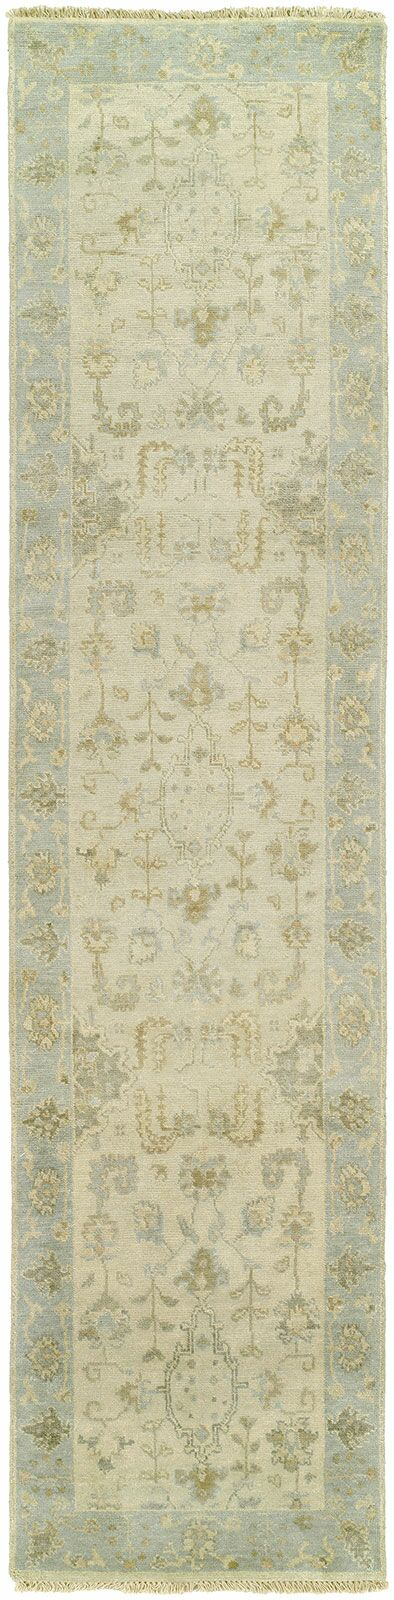 Daan Hand-Knotted Wool Ivory/BlueArea Rug Rug Size: Runner 2'6